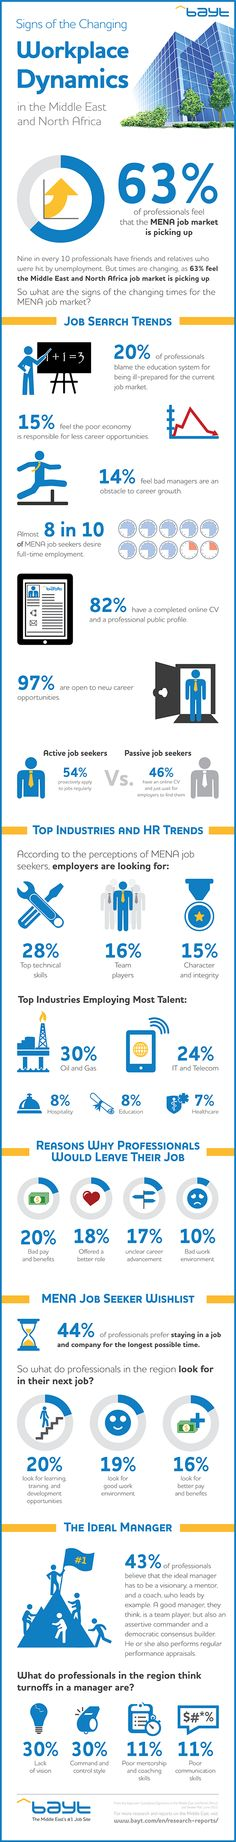 What are the Signs of the Changing Workplace Dynamics in the Middle East and North Africa? | Bayt.com #infographic #MiddleEast #jobs #career #office